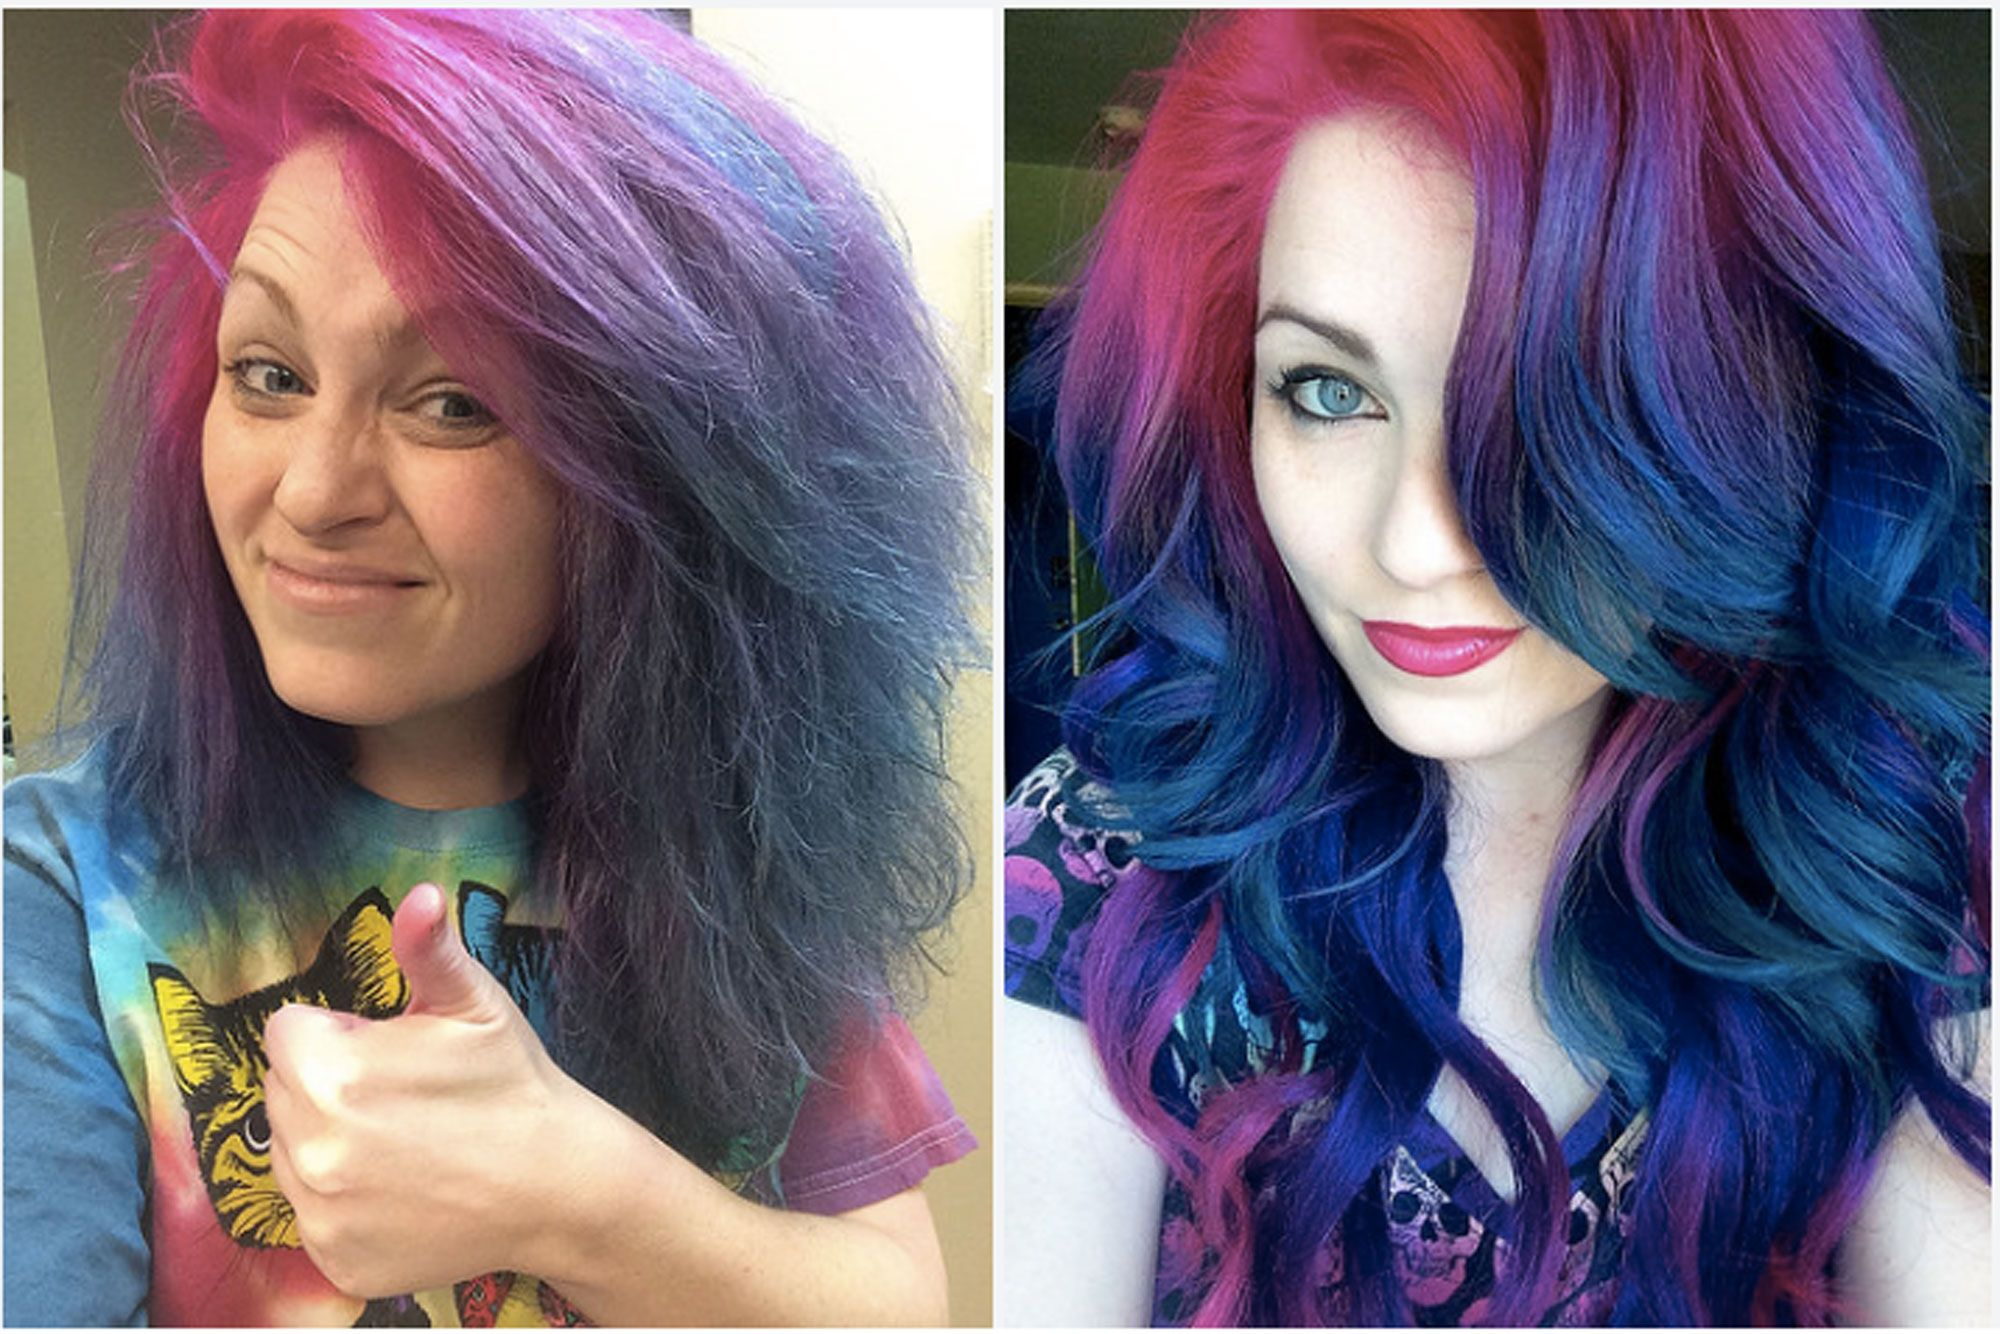 What These 2 Rainbow Hair Selfies Tell You About Social Media